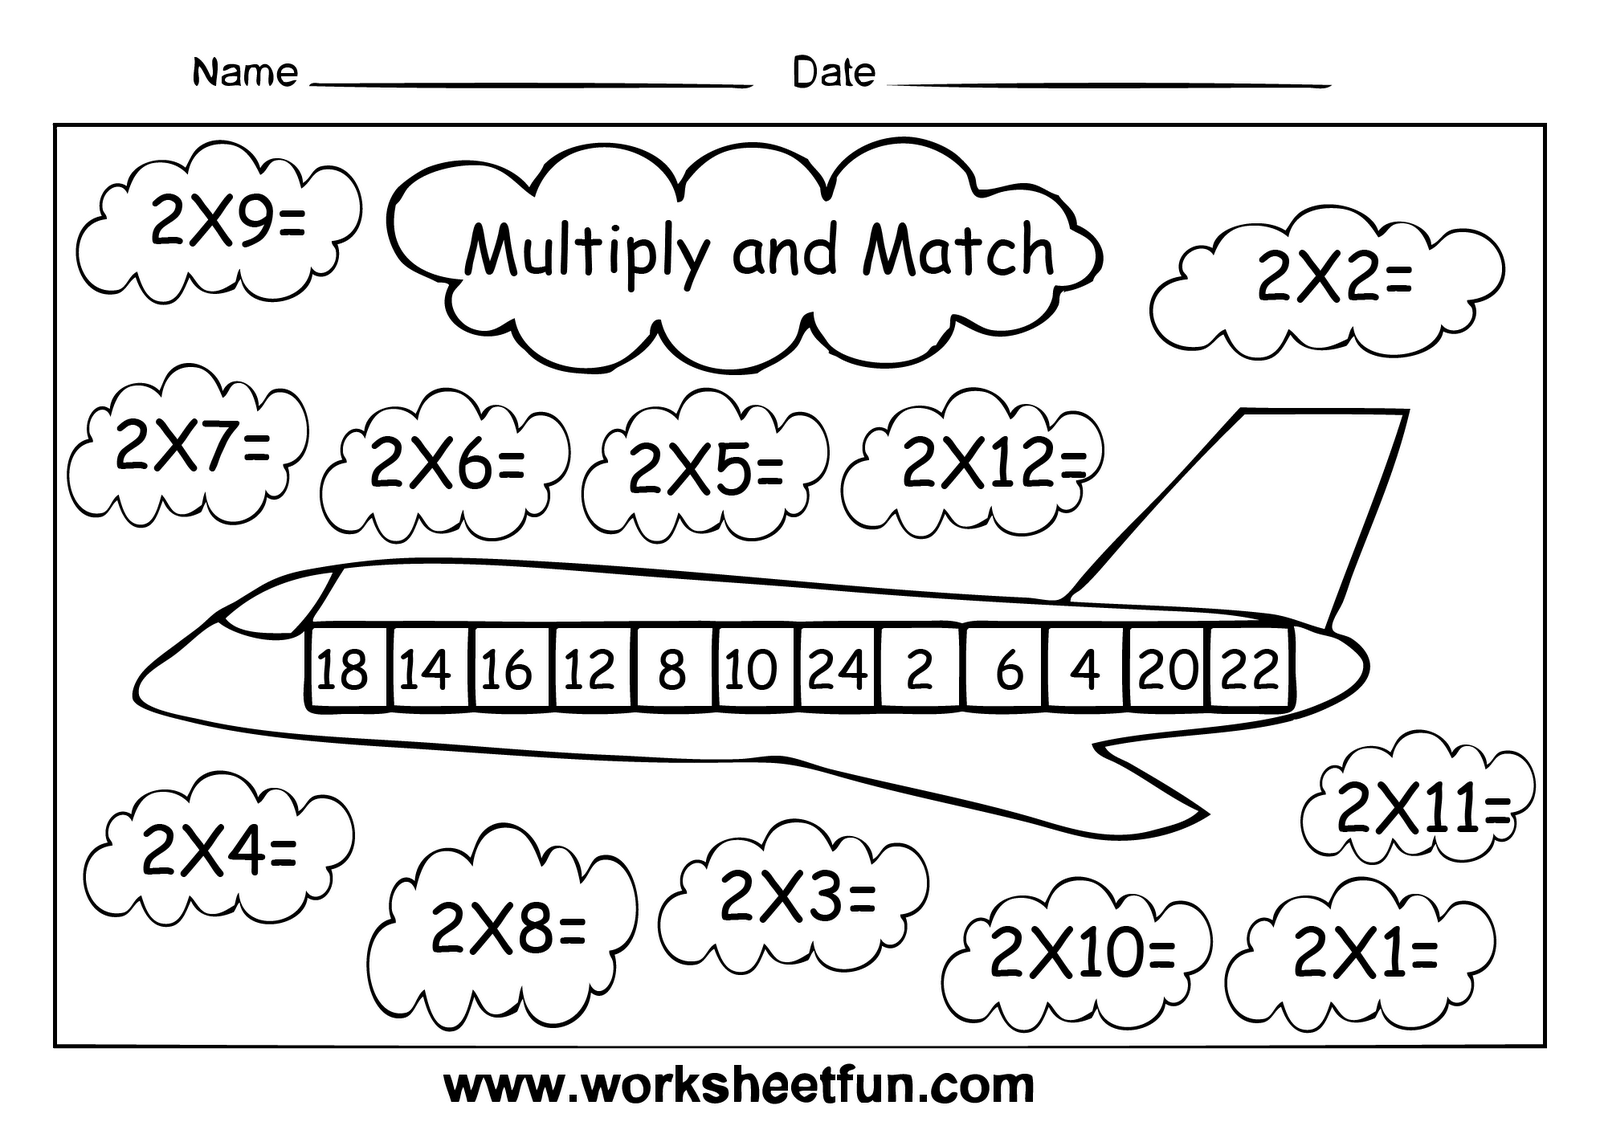 math worksheet : fun 2 times tables worksheets  sheets : Multiplication Worksheets 3 And 4 Times Tables